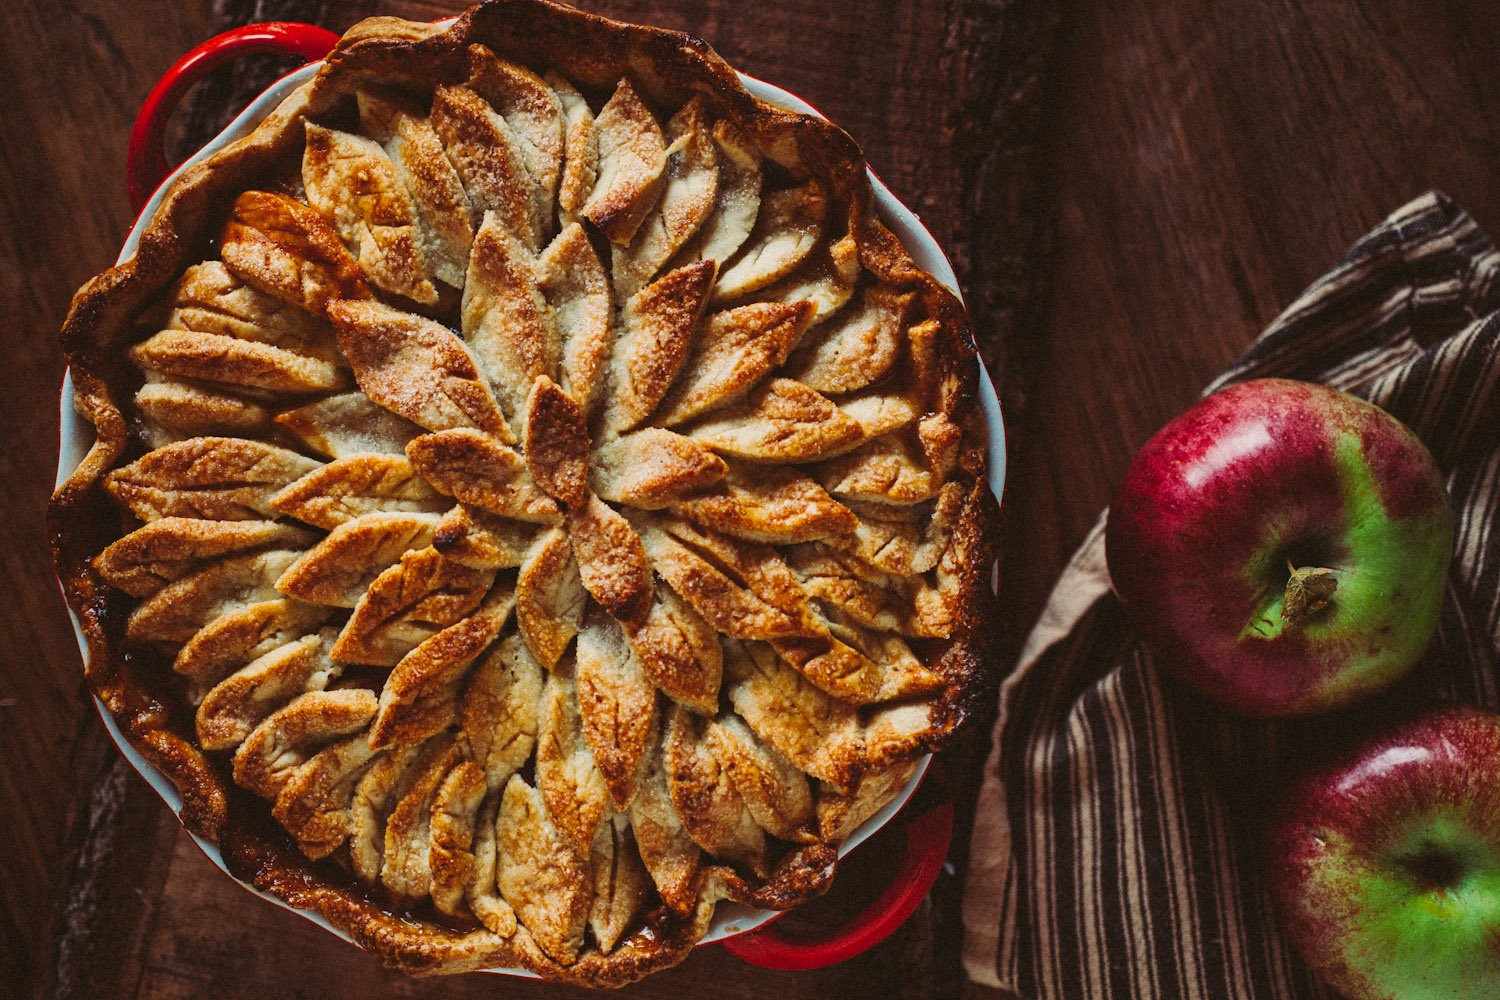 Thanksgiving Apple Pie  2014 Thanksgiving Round Up · The Crepes of Wrath The